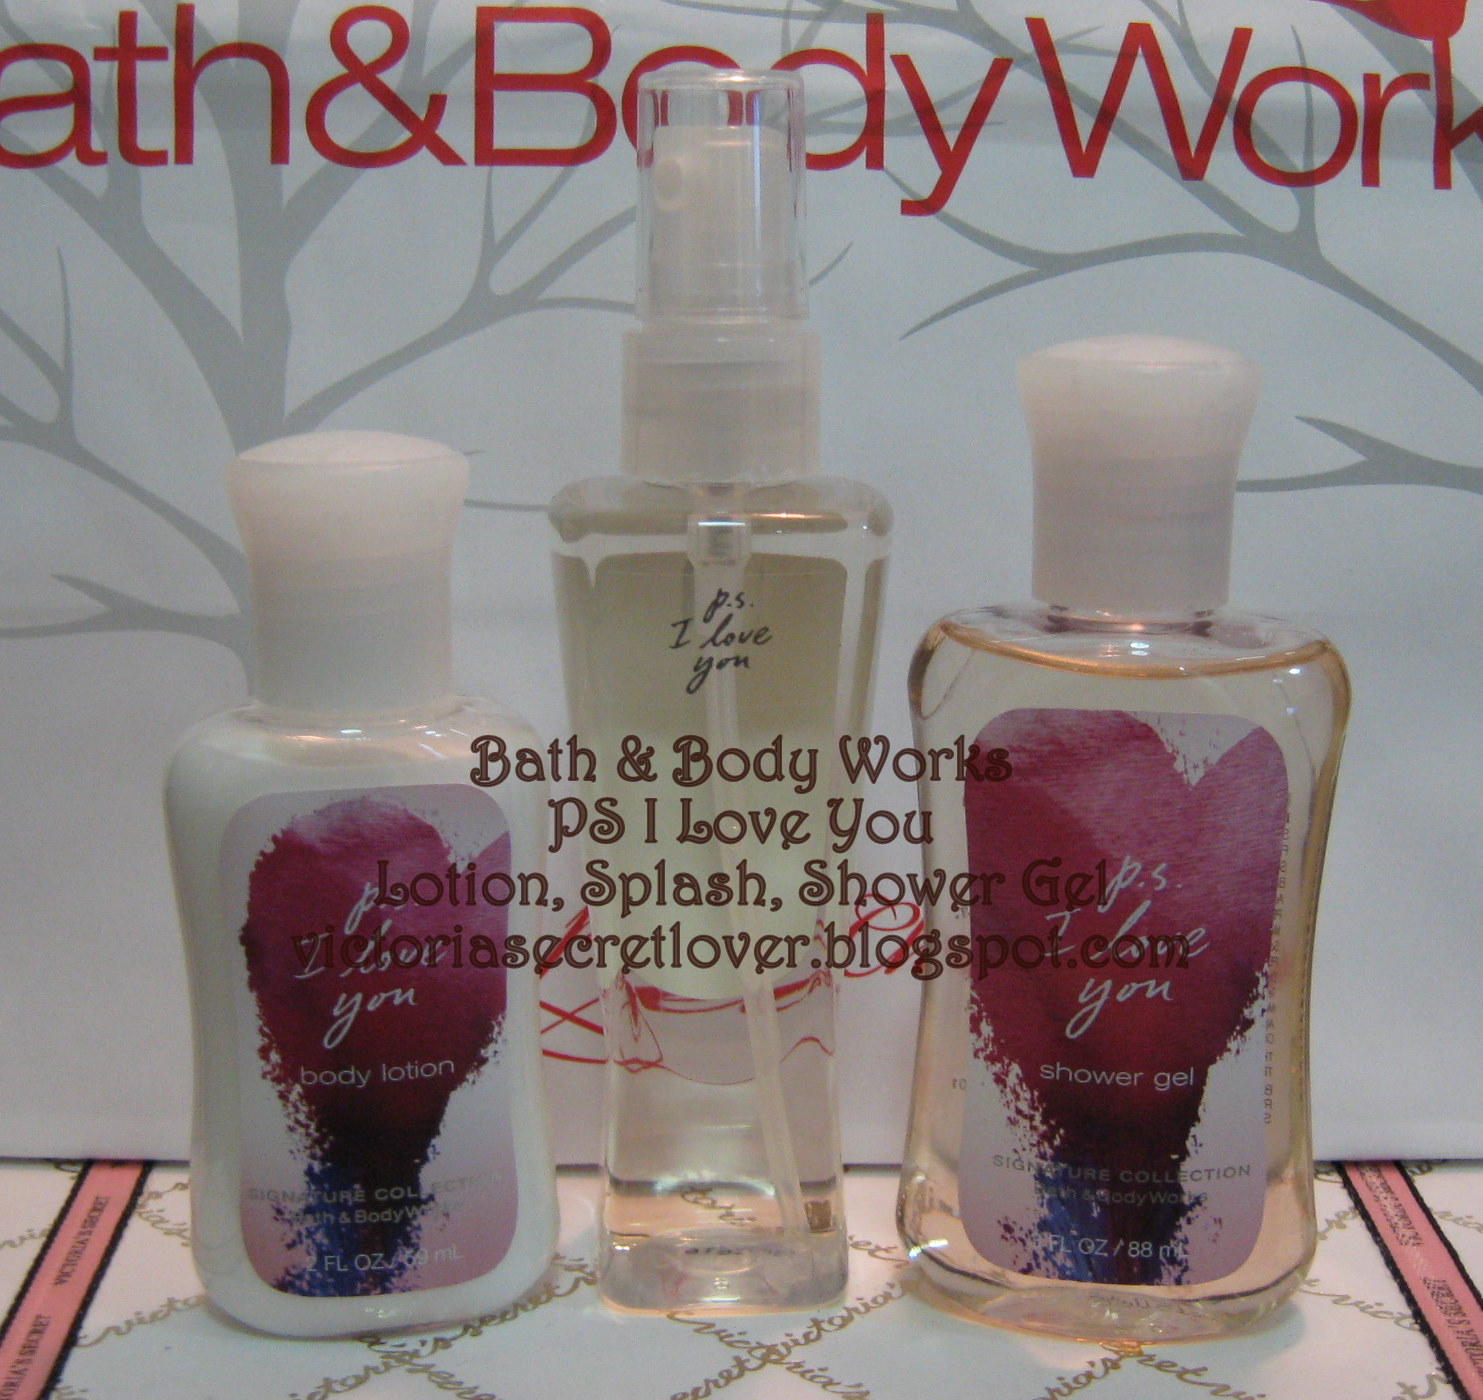 PS%2BI%2Blove%2Byou%2Bsplash lotion wash On Canada Day, M, A and I headed out to Westham Island in Delta/Ladner to ...